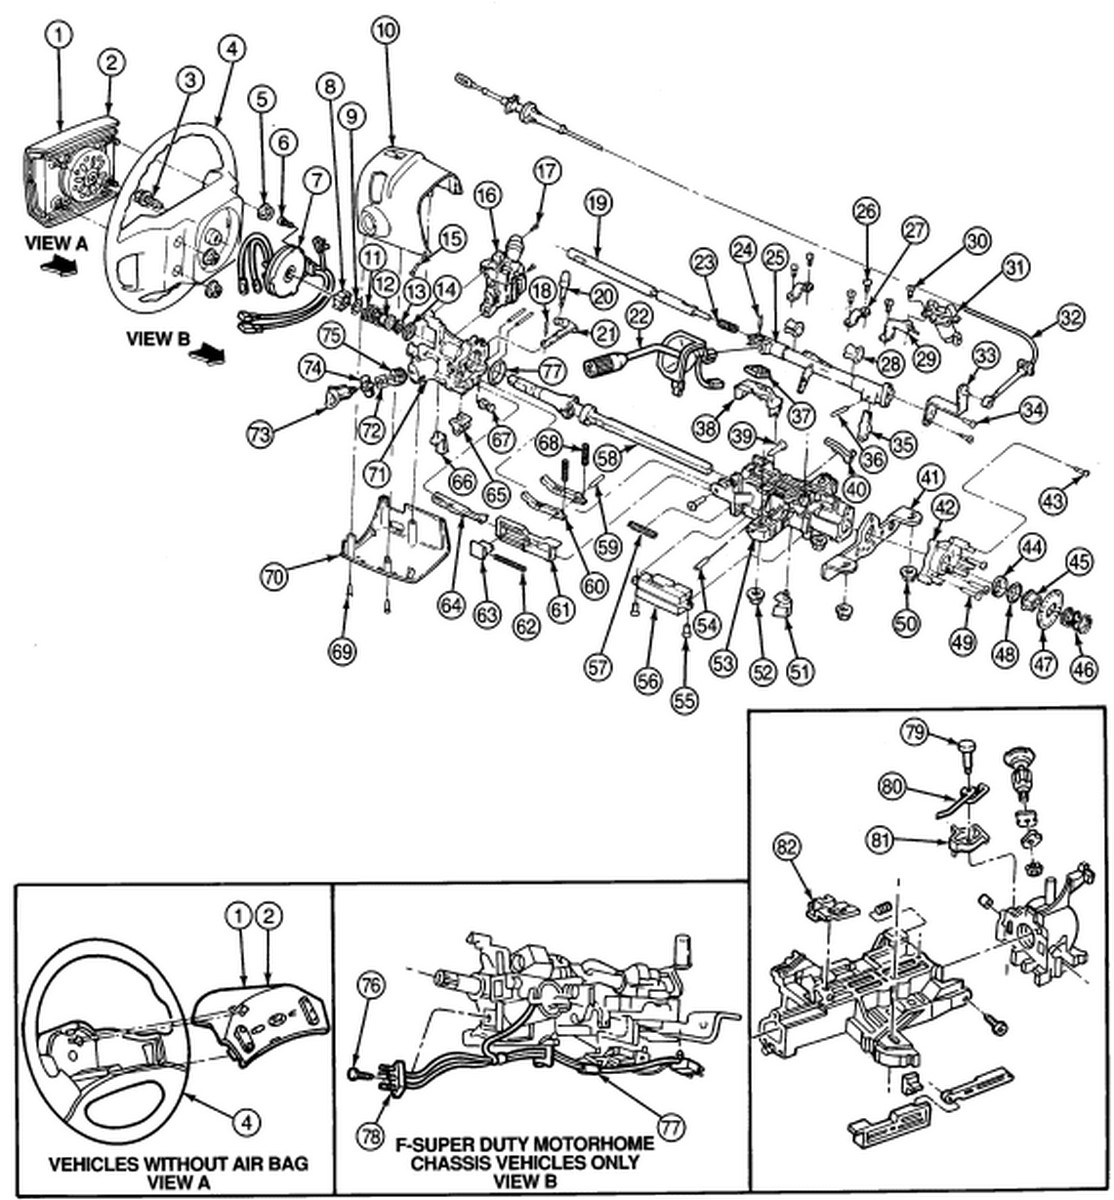 96 Ford F 250 Ignition Switch Wiring Diagram on 1995 Ford F 150 Engine Control Module Location